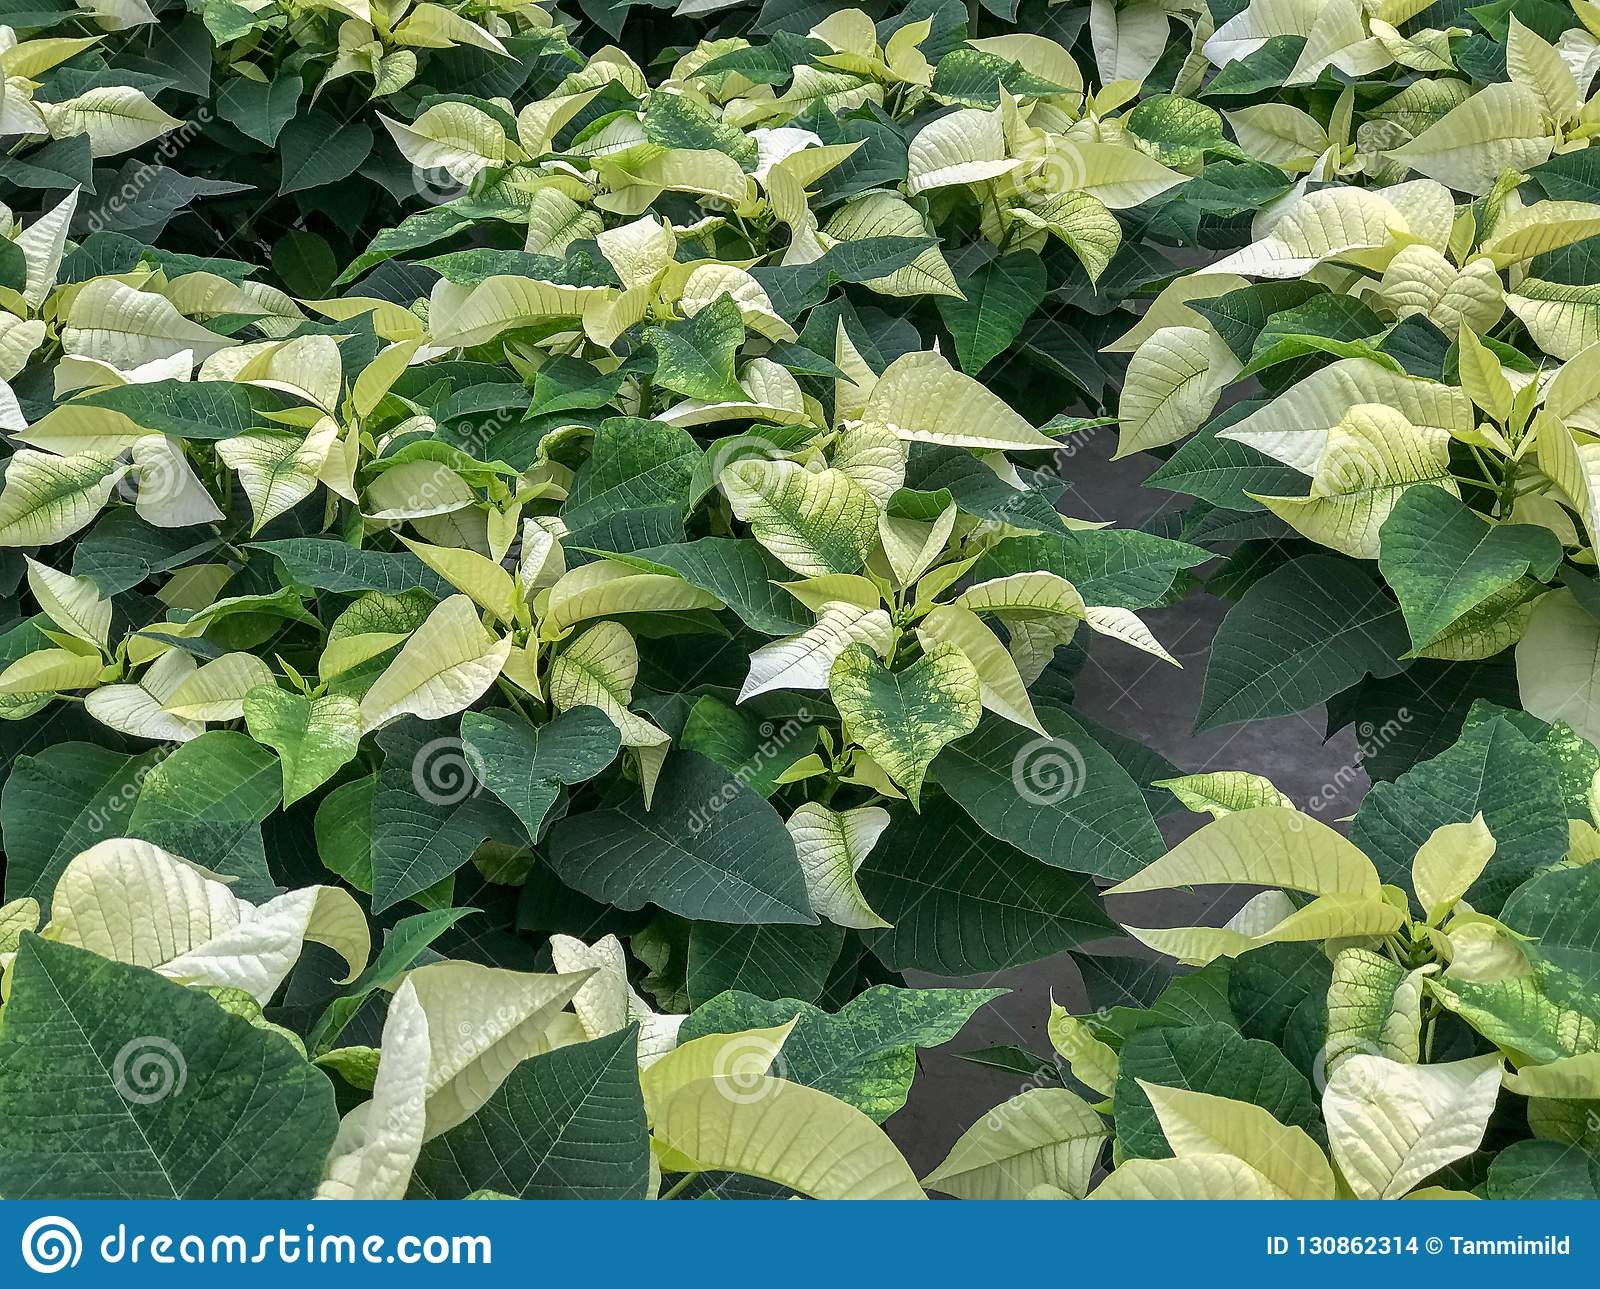 Field Of White Poinsettia Plants Stock Photo Image Of Field